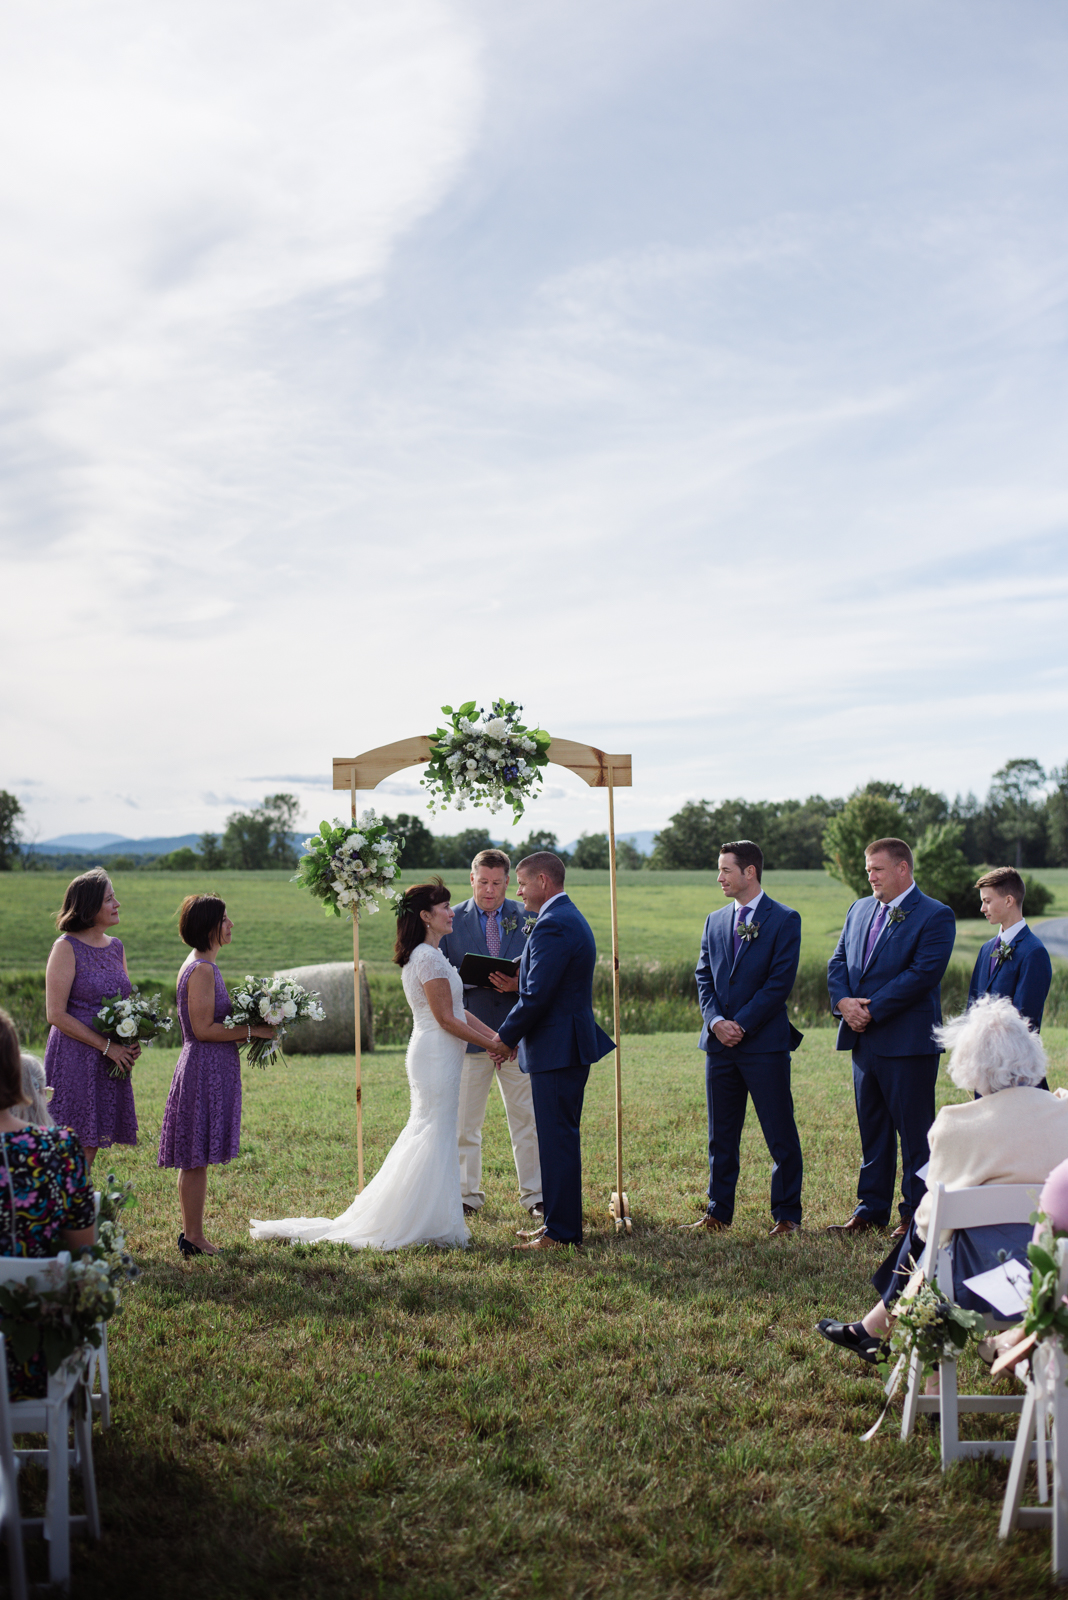 09082018-ChaipelMitch-JuliaLuckettPhotography-212.jpg